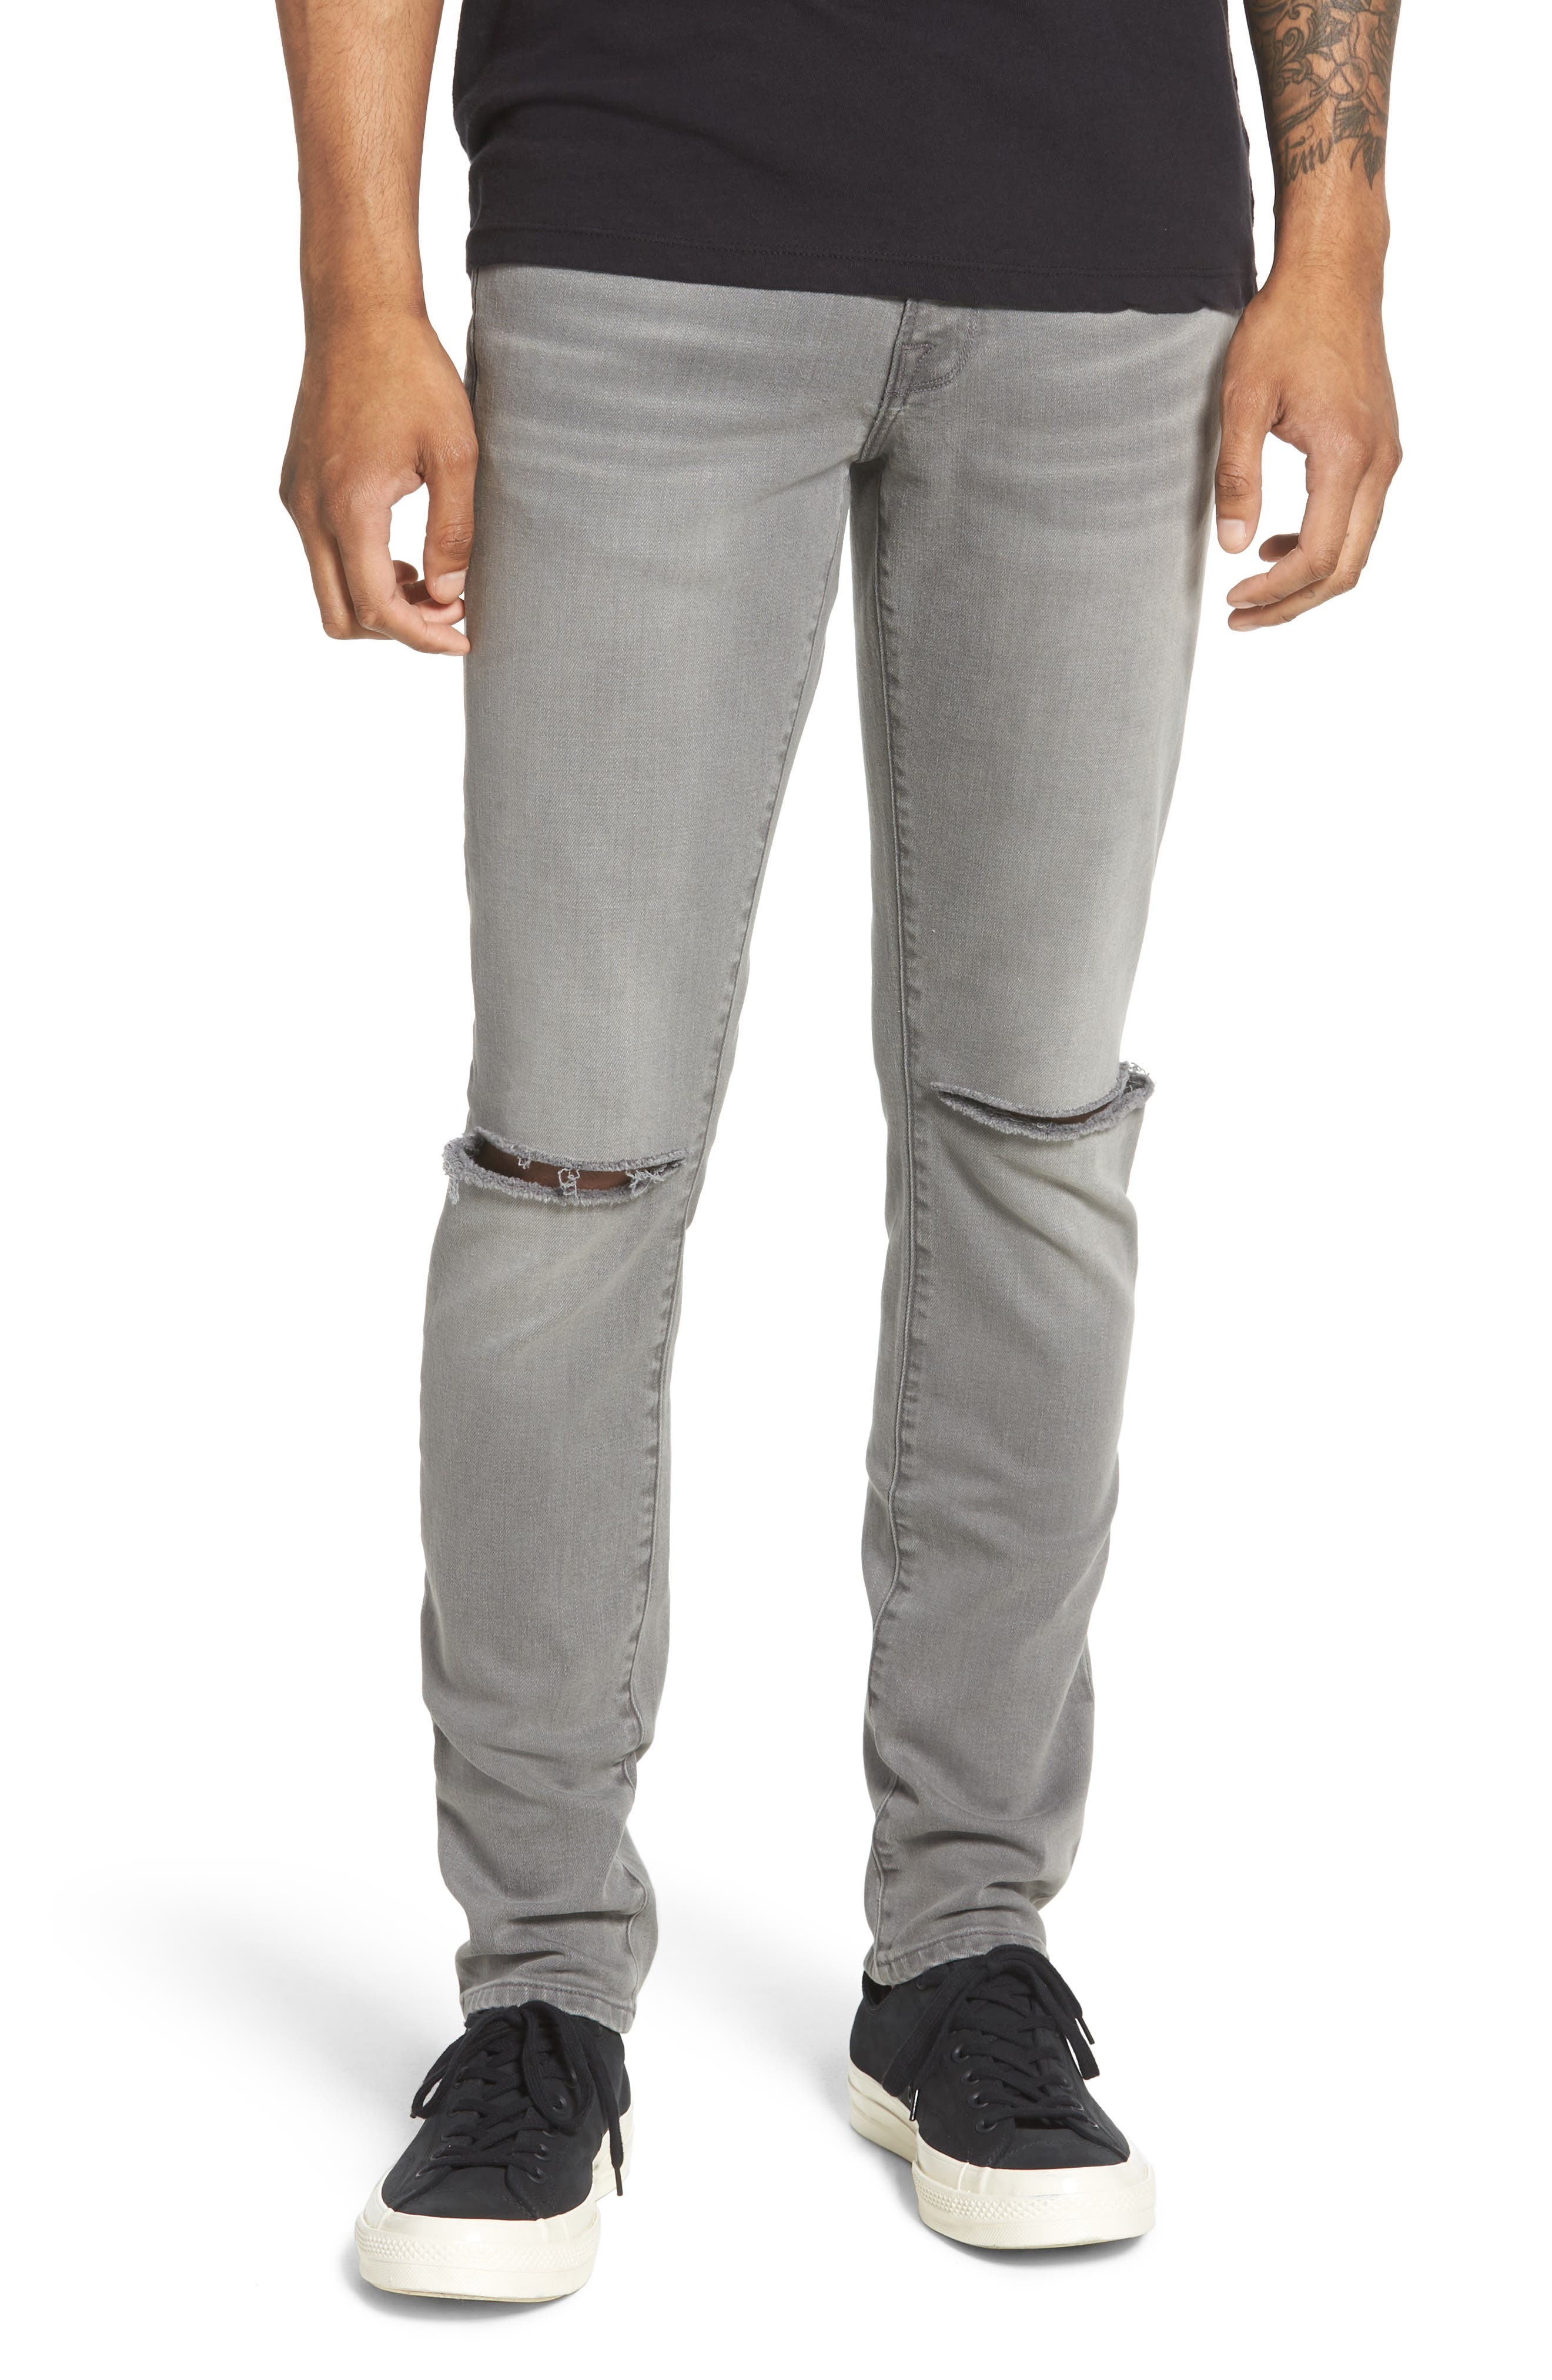 L'Homme Skinny Fit Jeans,                             Main thumbnail 1, color,                             030